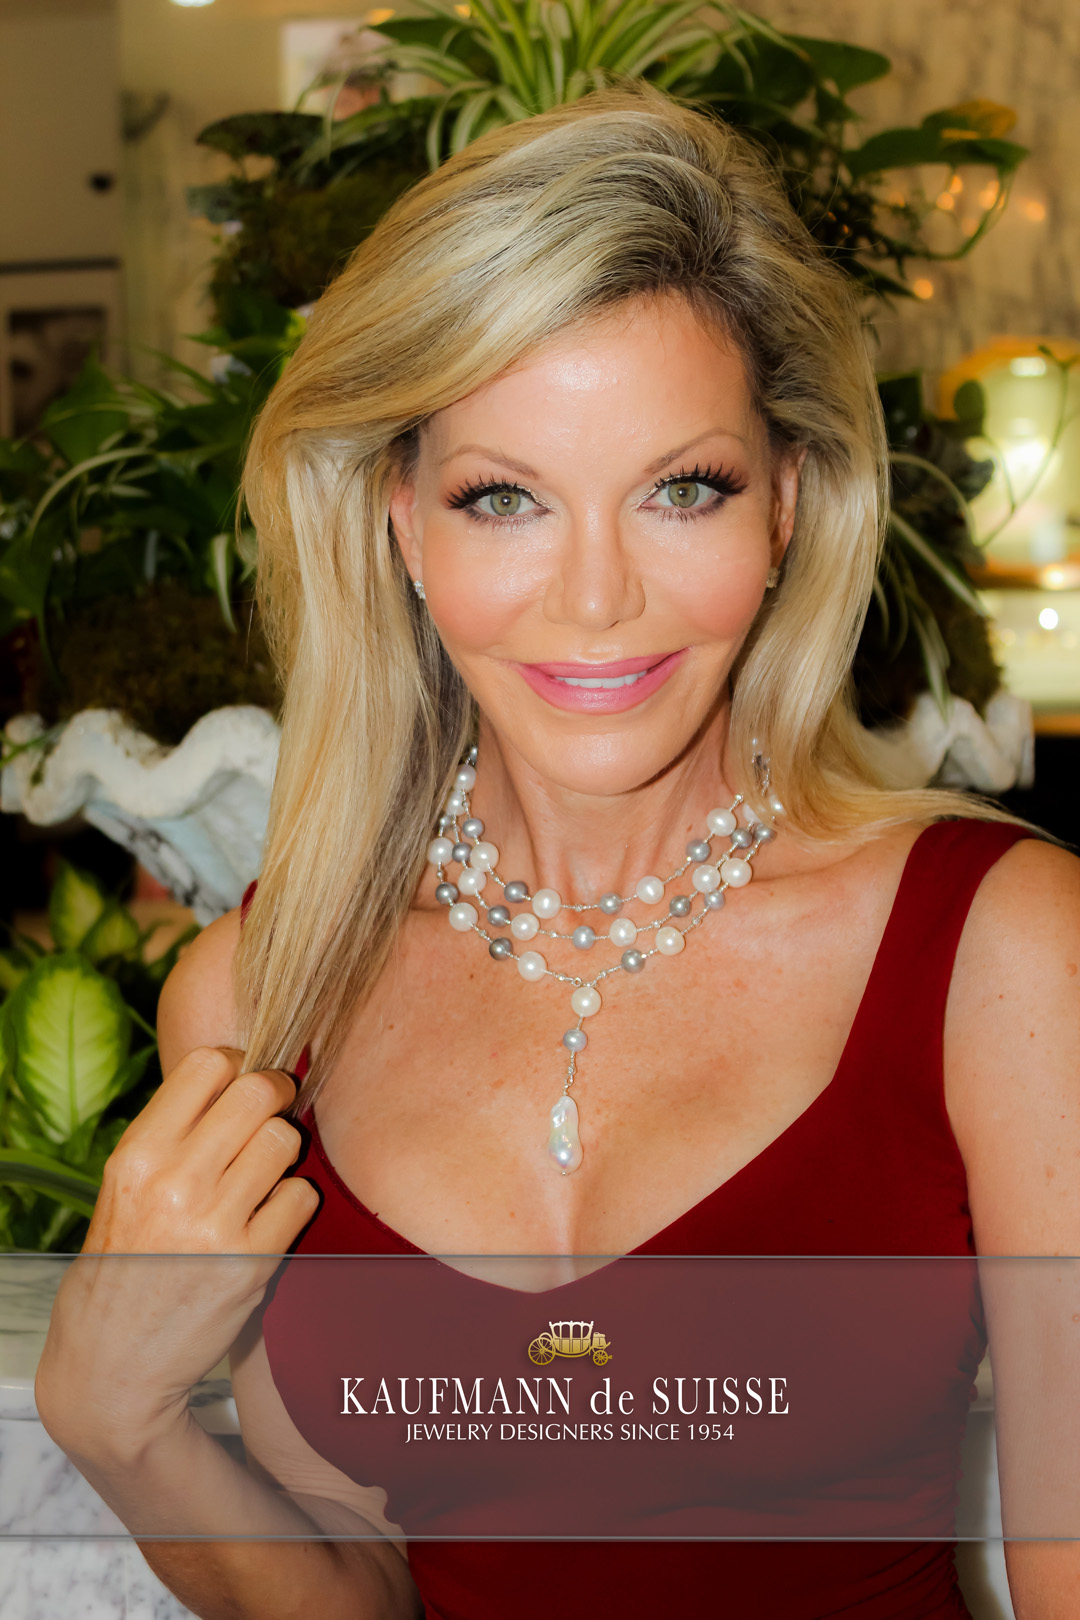 The Palm Beach Lariat Pearl Necklace